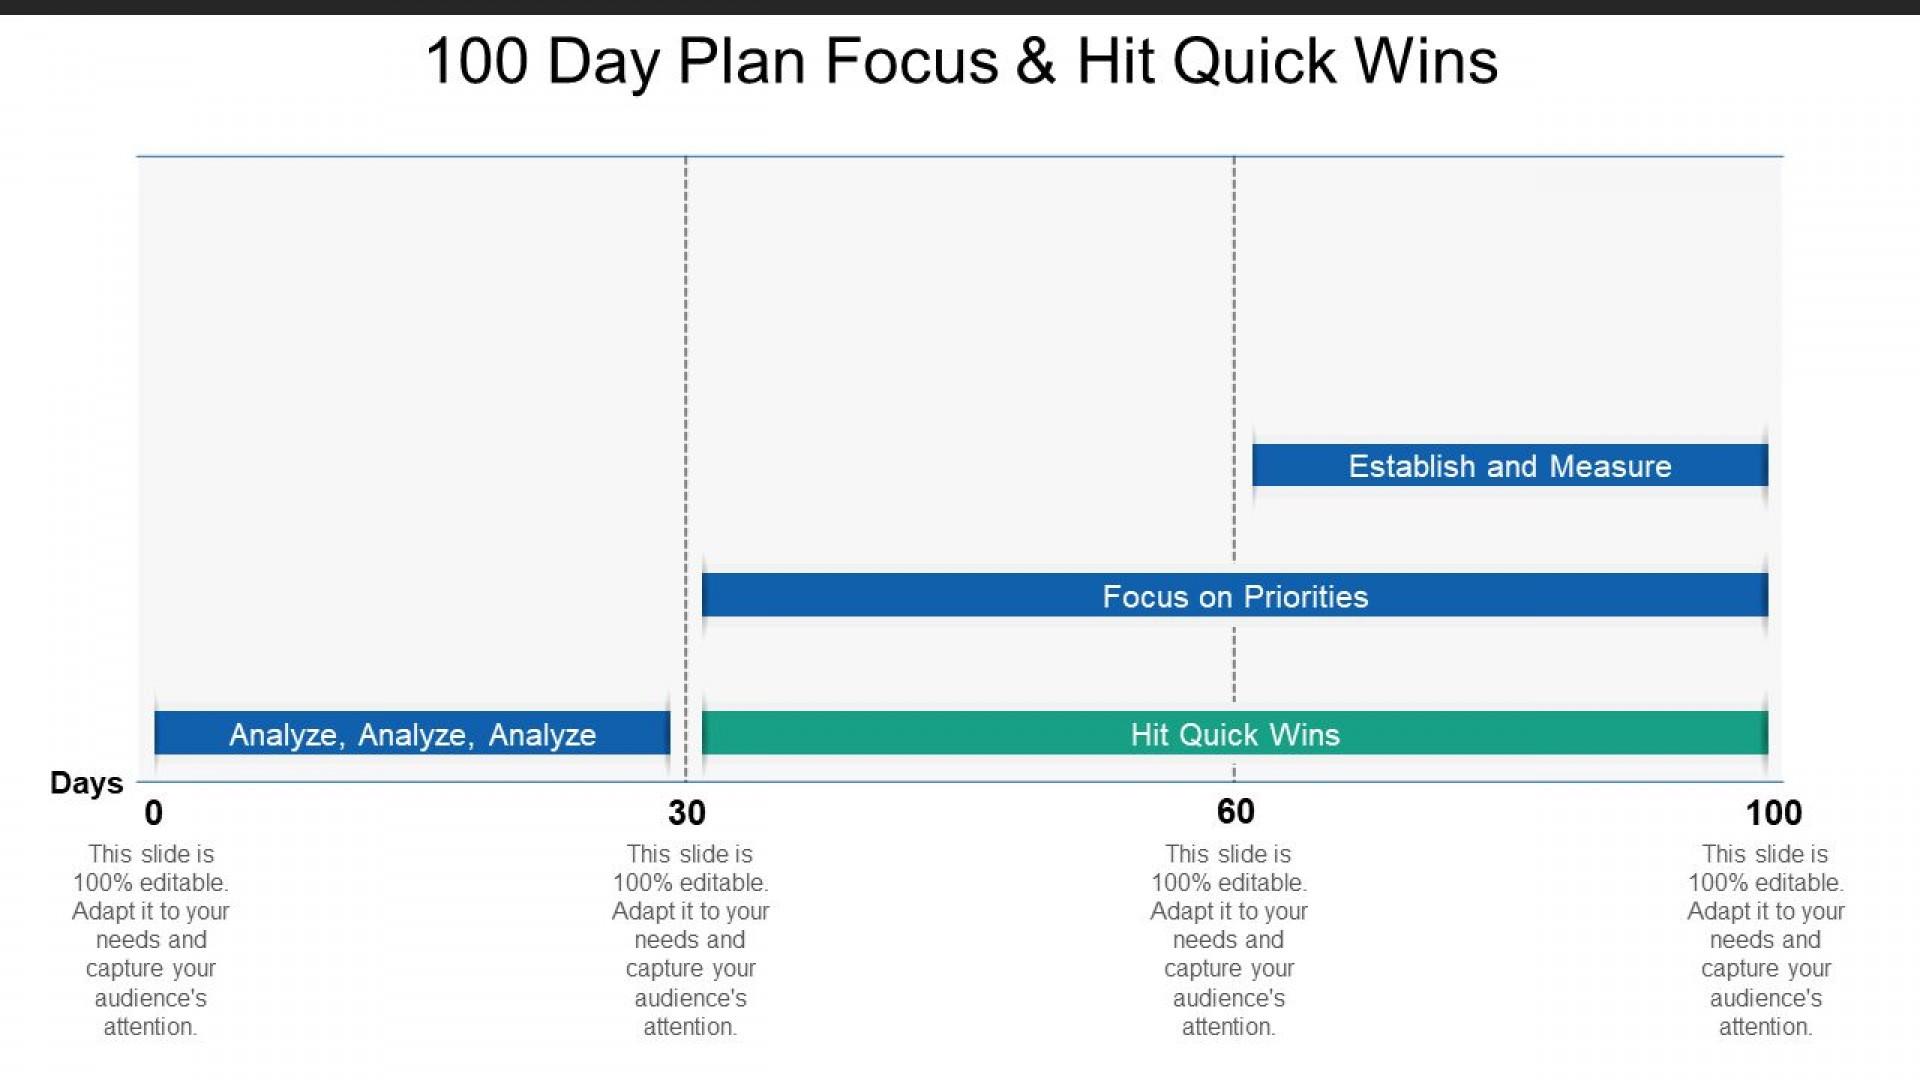 003 Outstanding 100 Day Planning Template High Def  Plan Powerpoint Free New Job Example1920